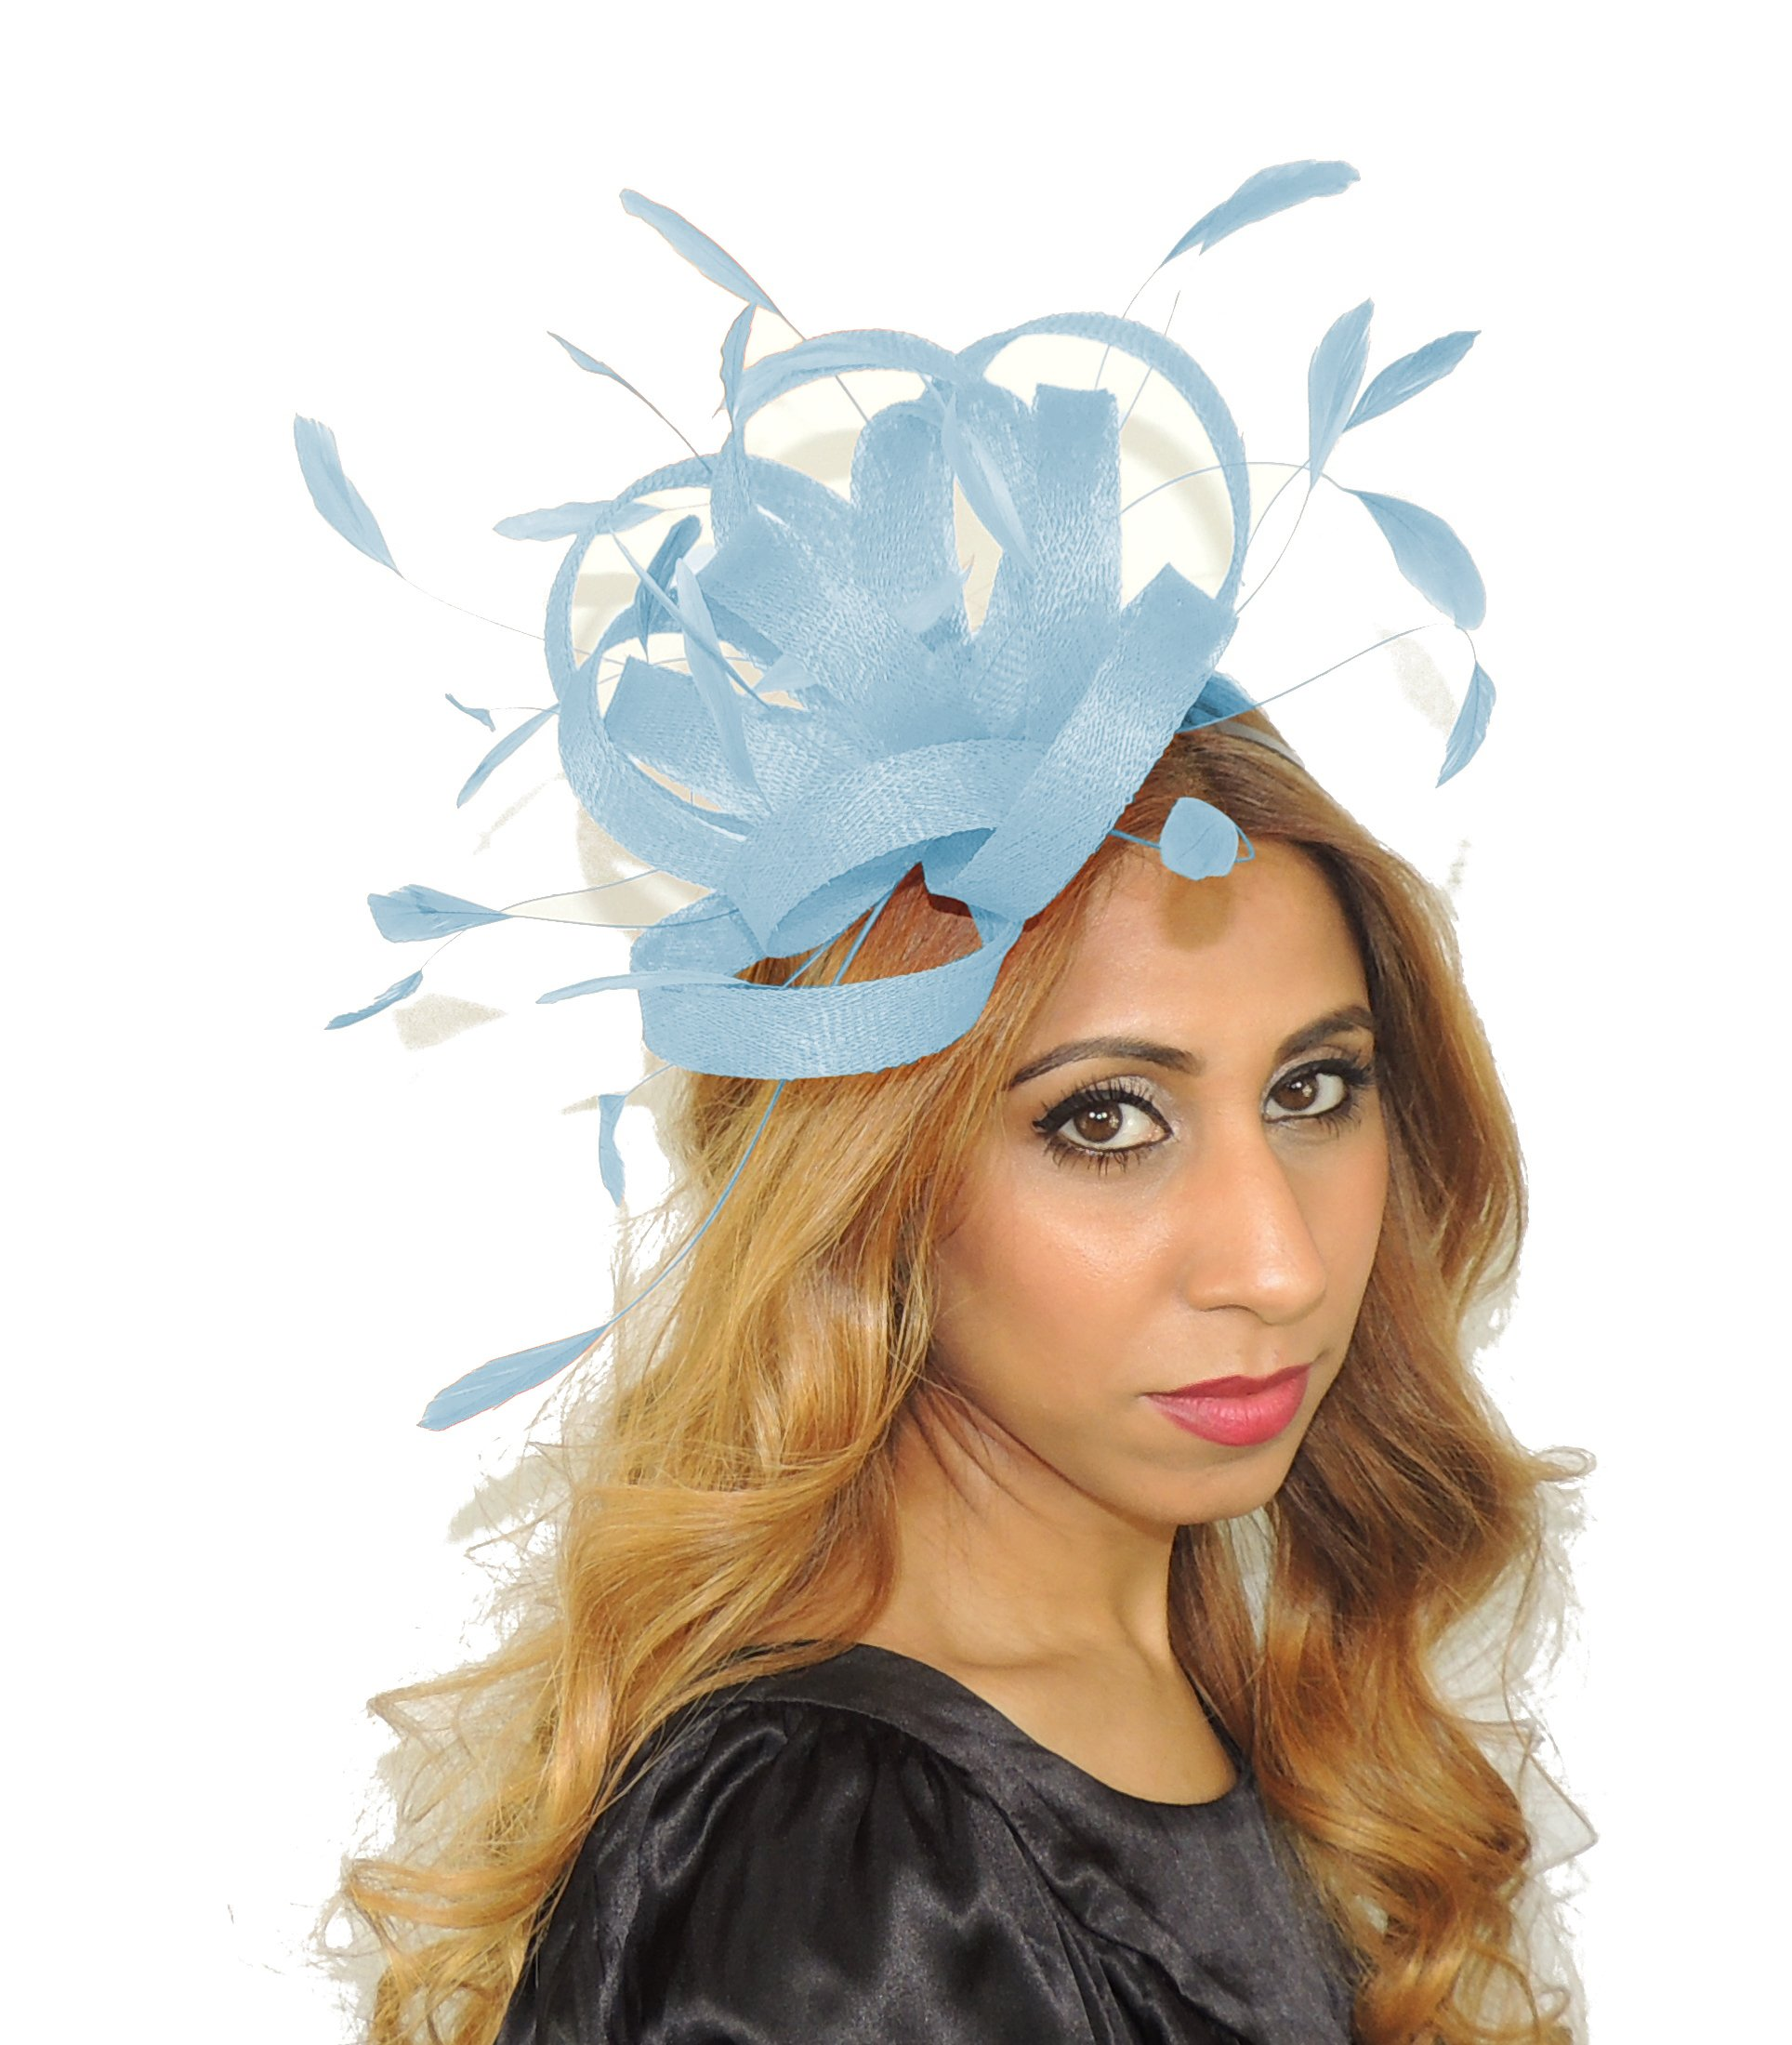 Hats By Cressida Pretty Fireball Baby Blue Feathers Ascot Derby Fascinator Hat - With Headband